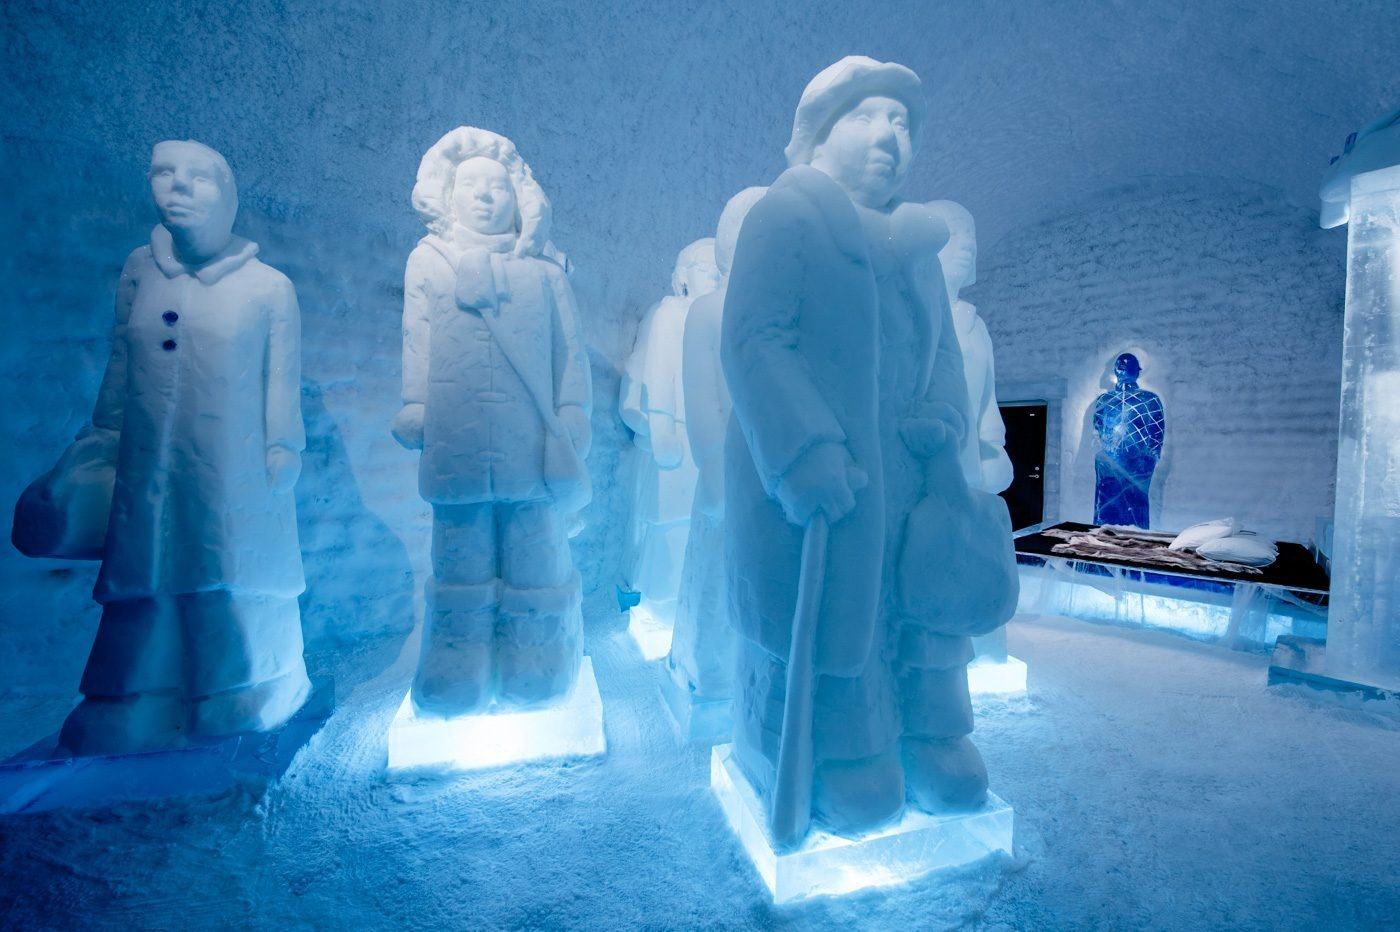 deluxe-suite-the-invisible-invincible-army-icehotel-365-1400x932_01